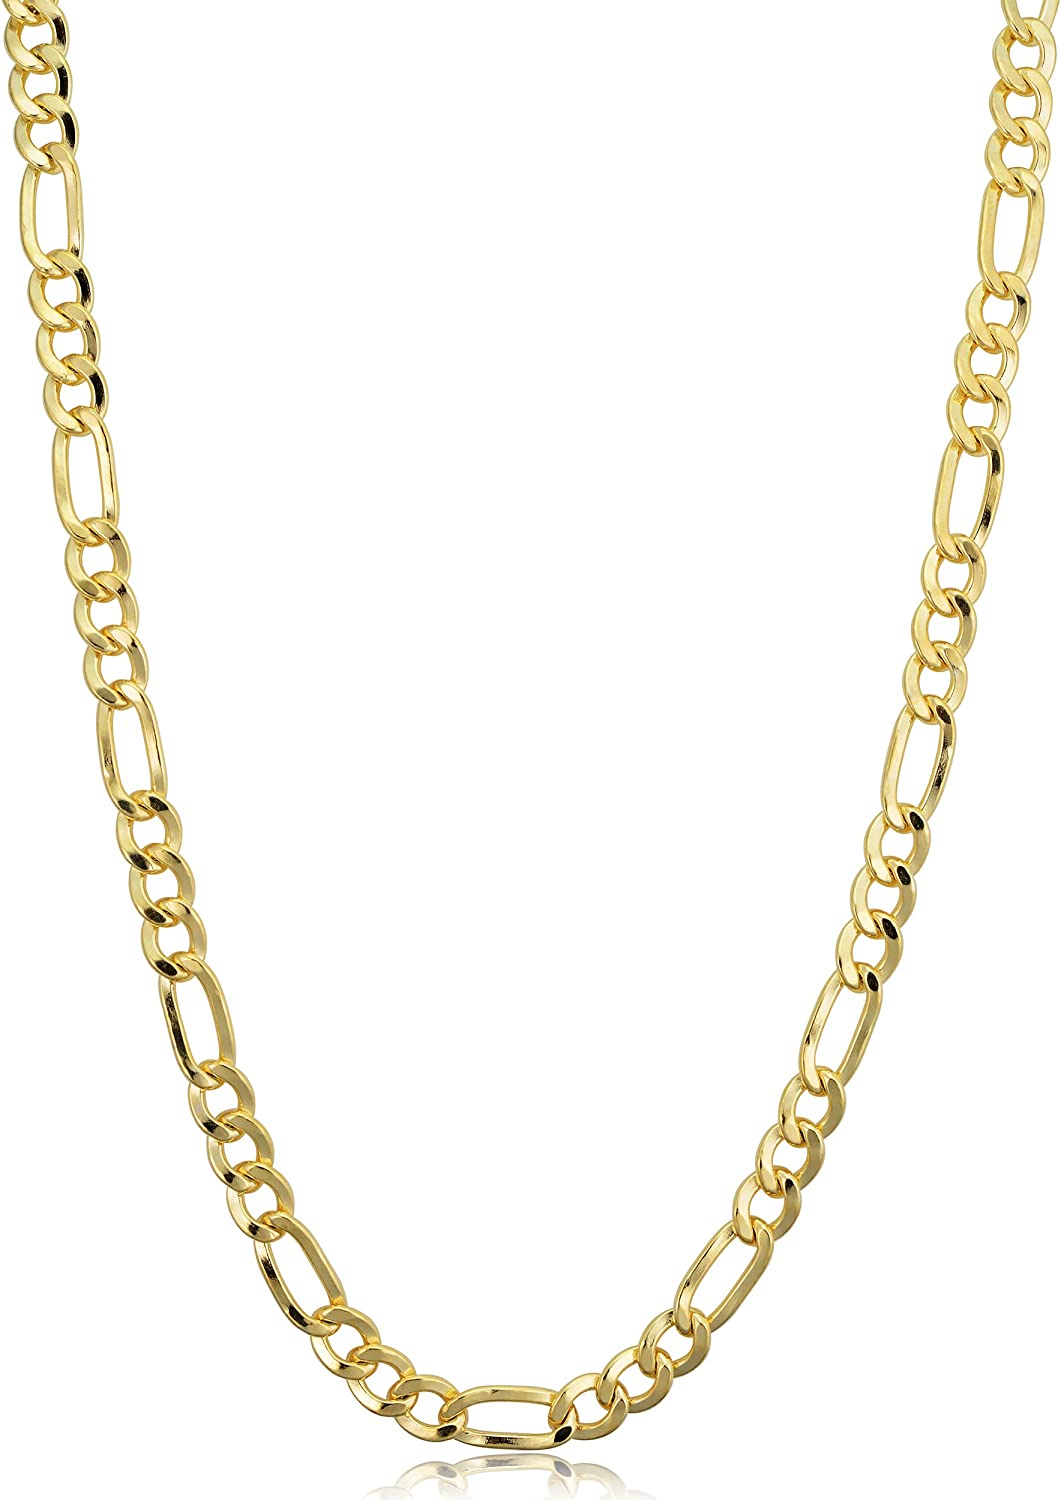 Kooljewelry 14k Yellow Gold Filled Figaro Necklace (3.3 mm, 4.2 mm, 5.2 mm, 6 mm, 7.8 mm or 8.6 mm)